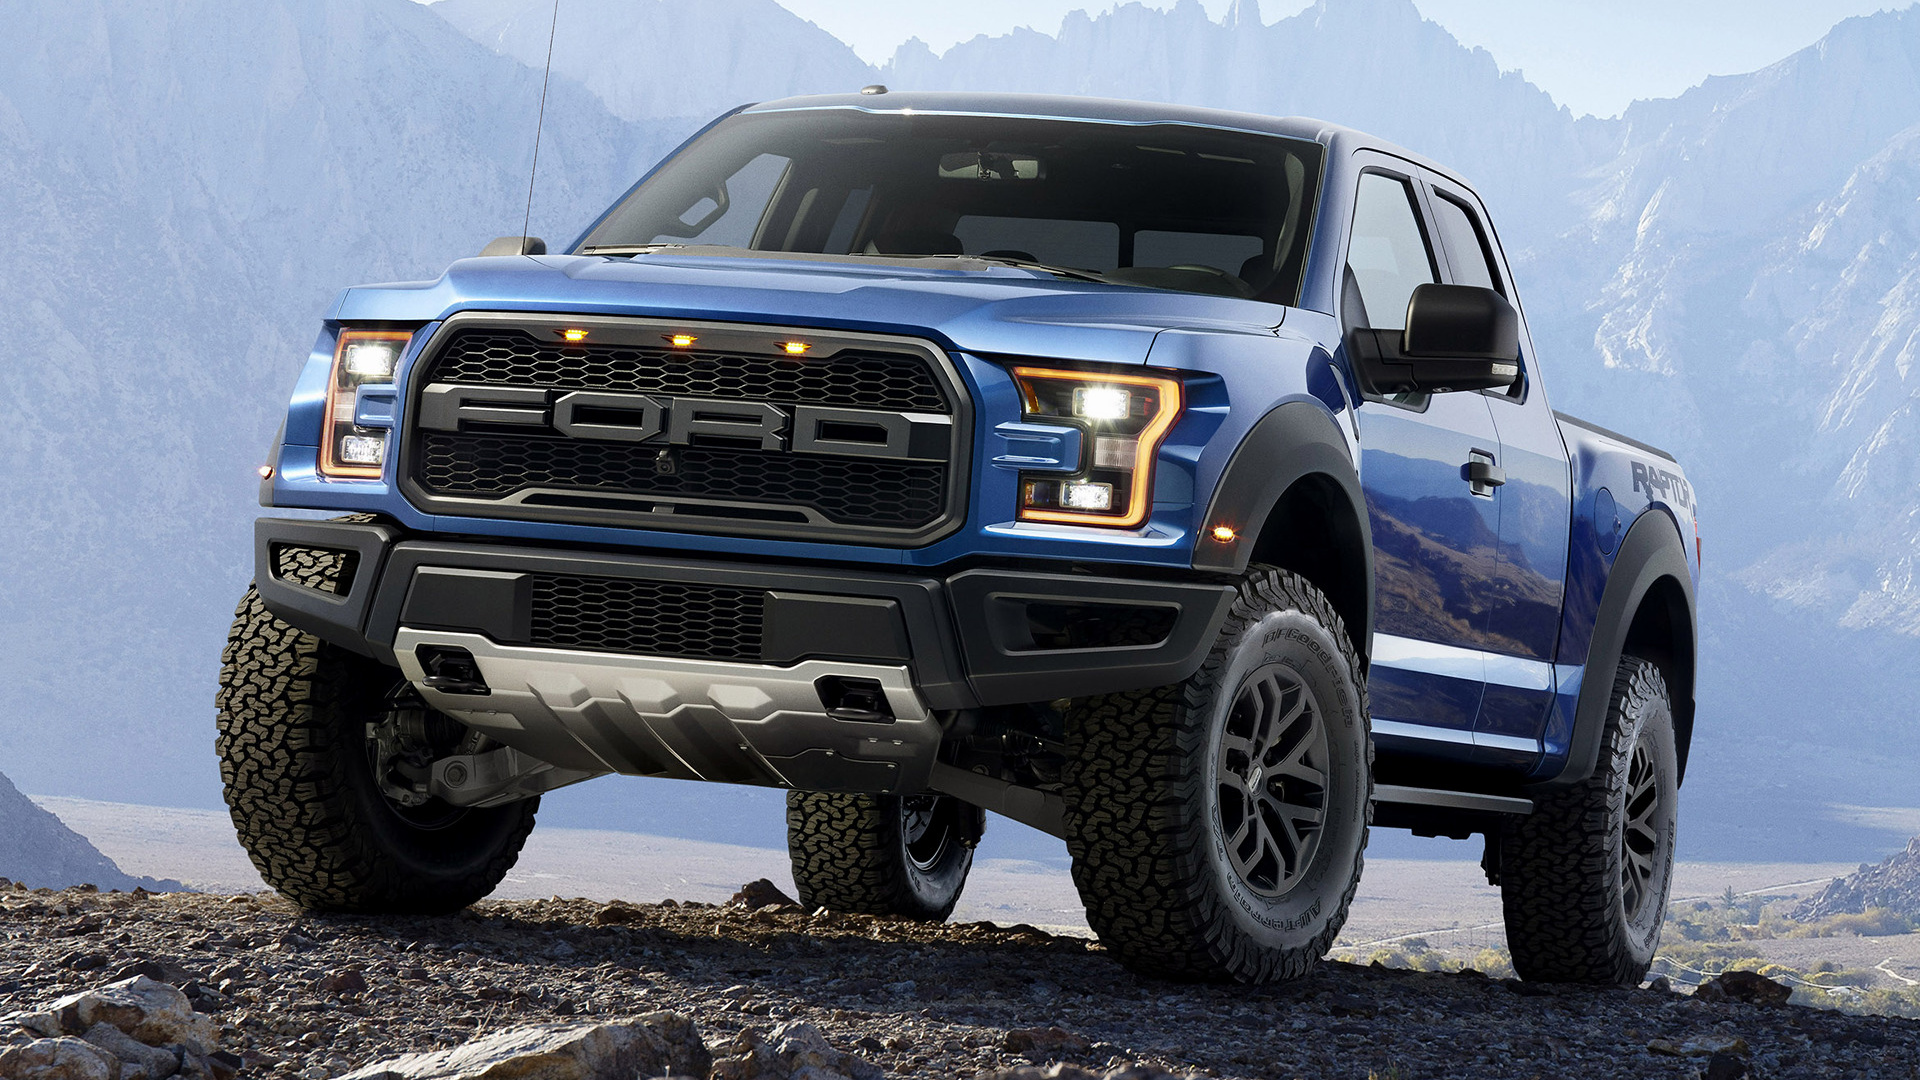 Hd Ford Raptor Backgrounds Pixelstalk Net